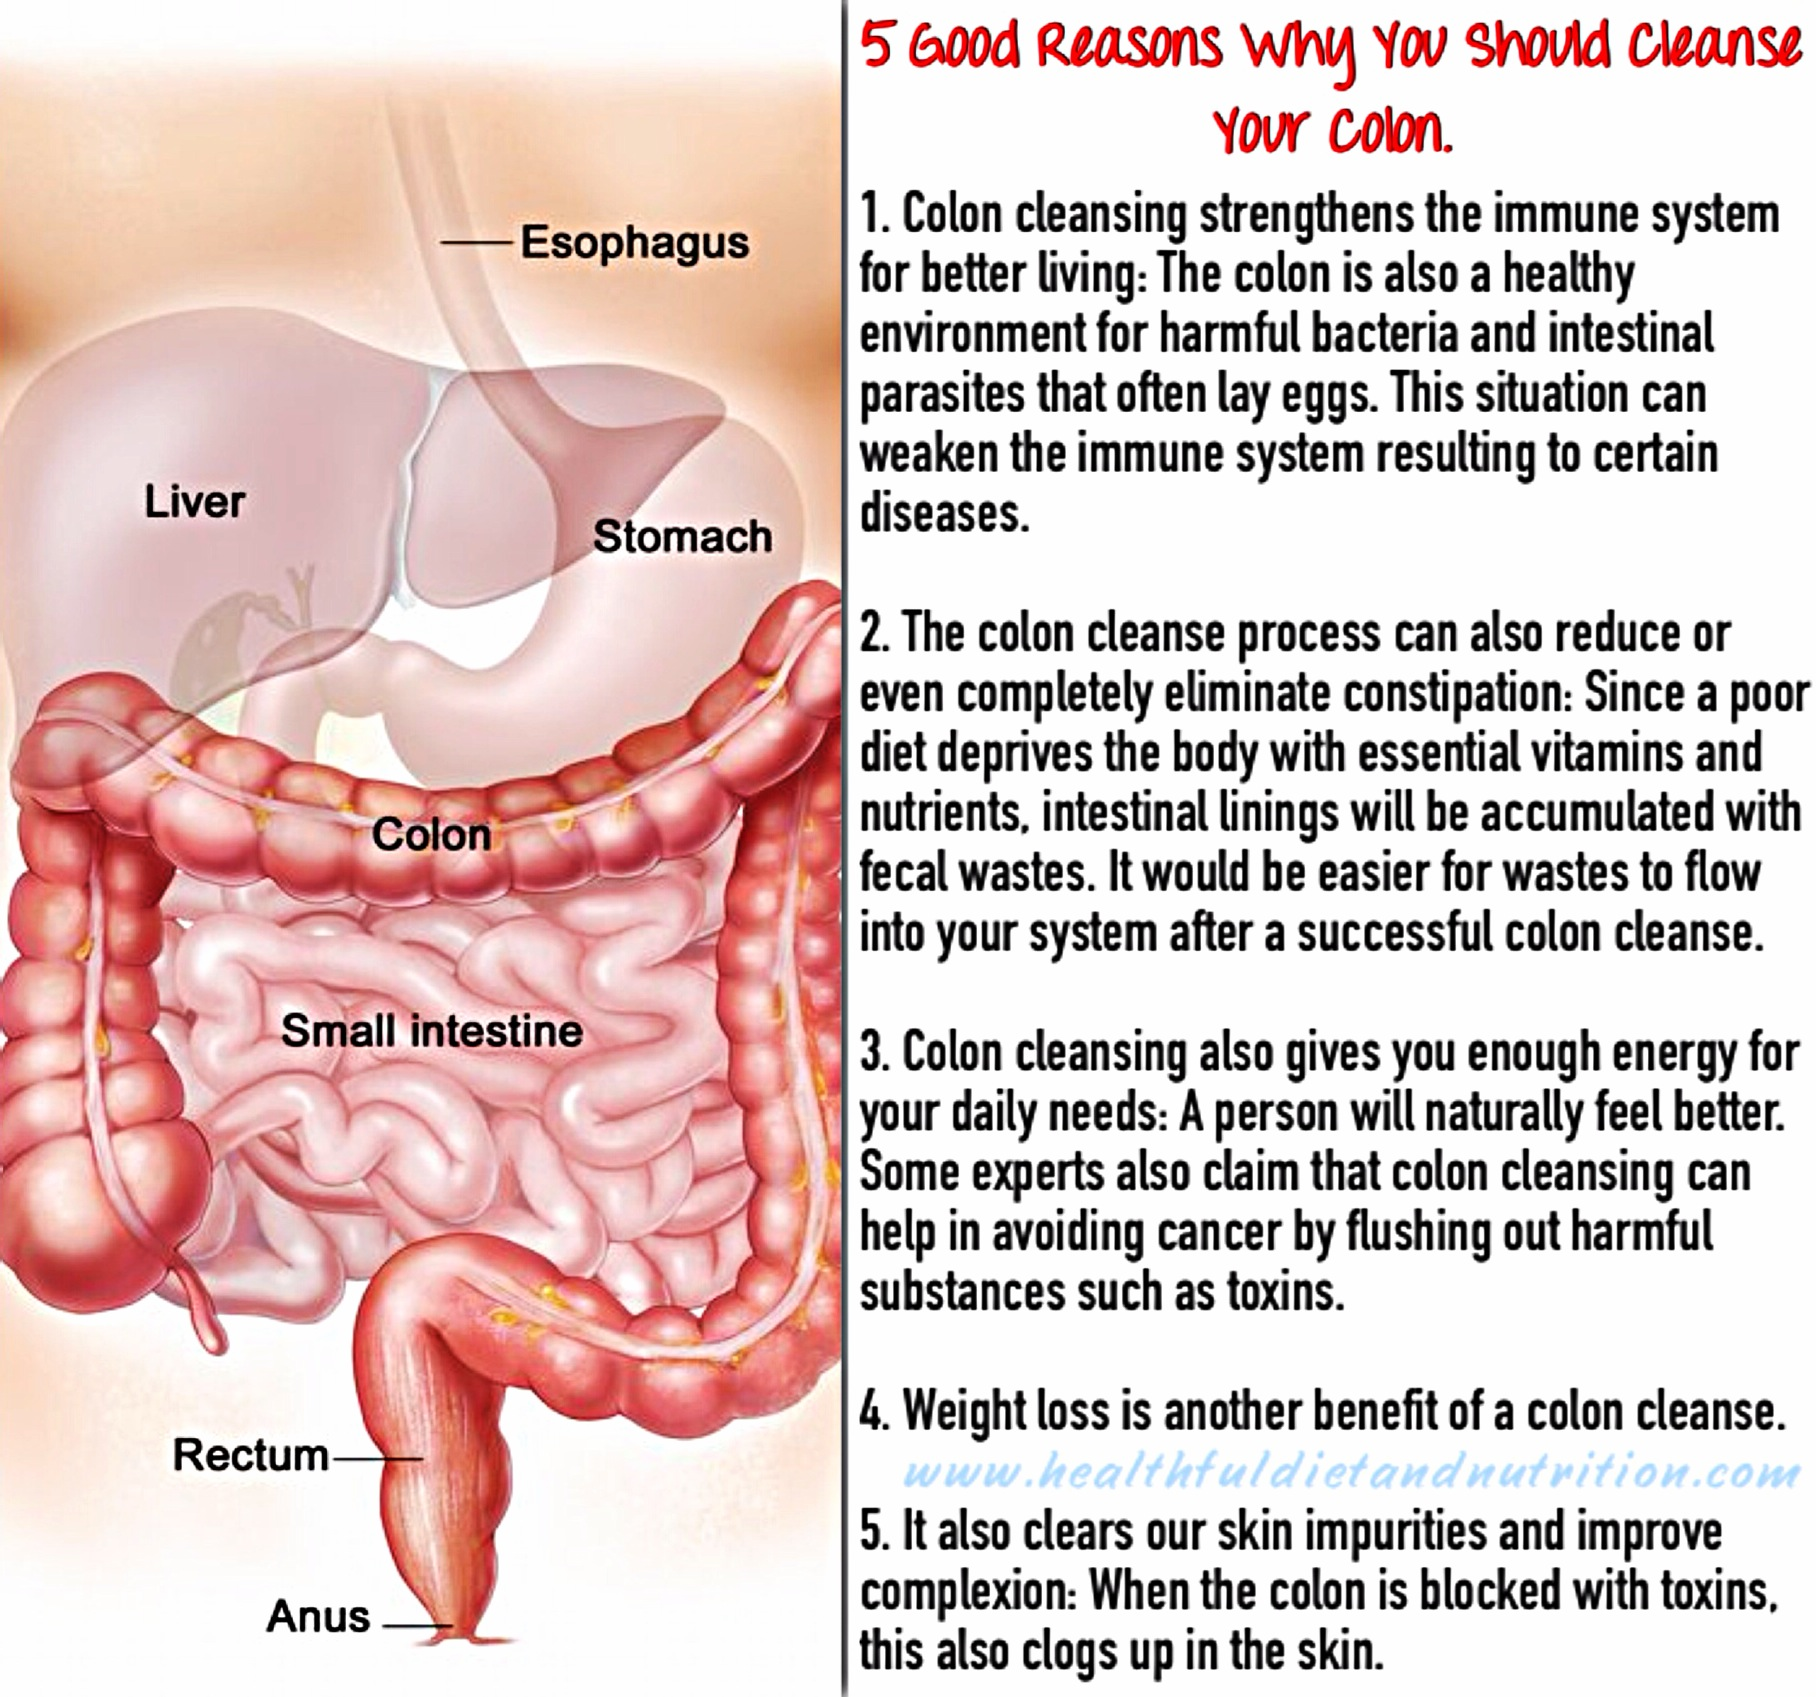 5 Good Why Should Cleanse Your Colon